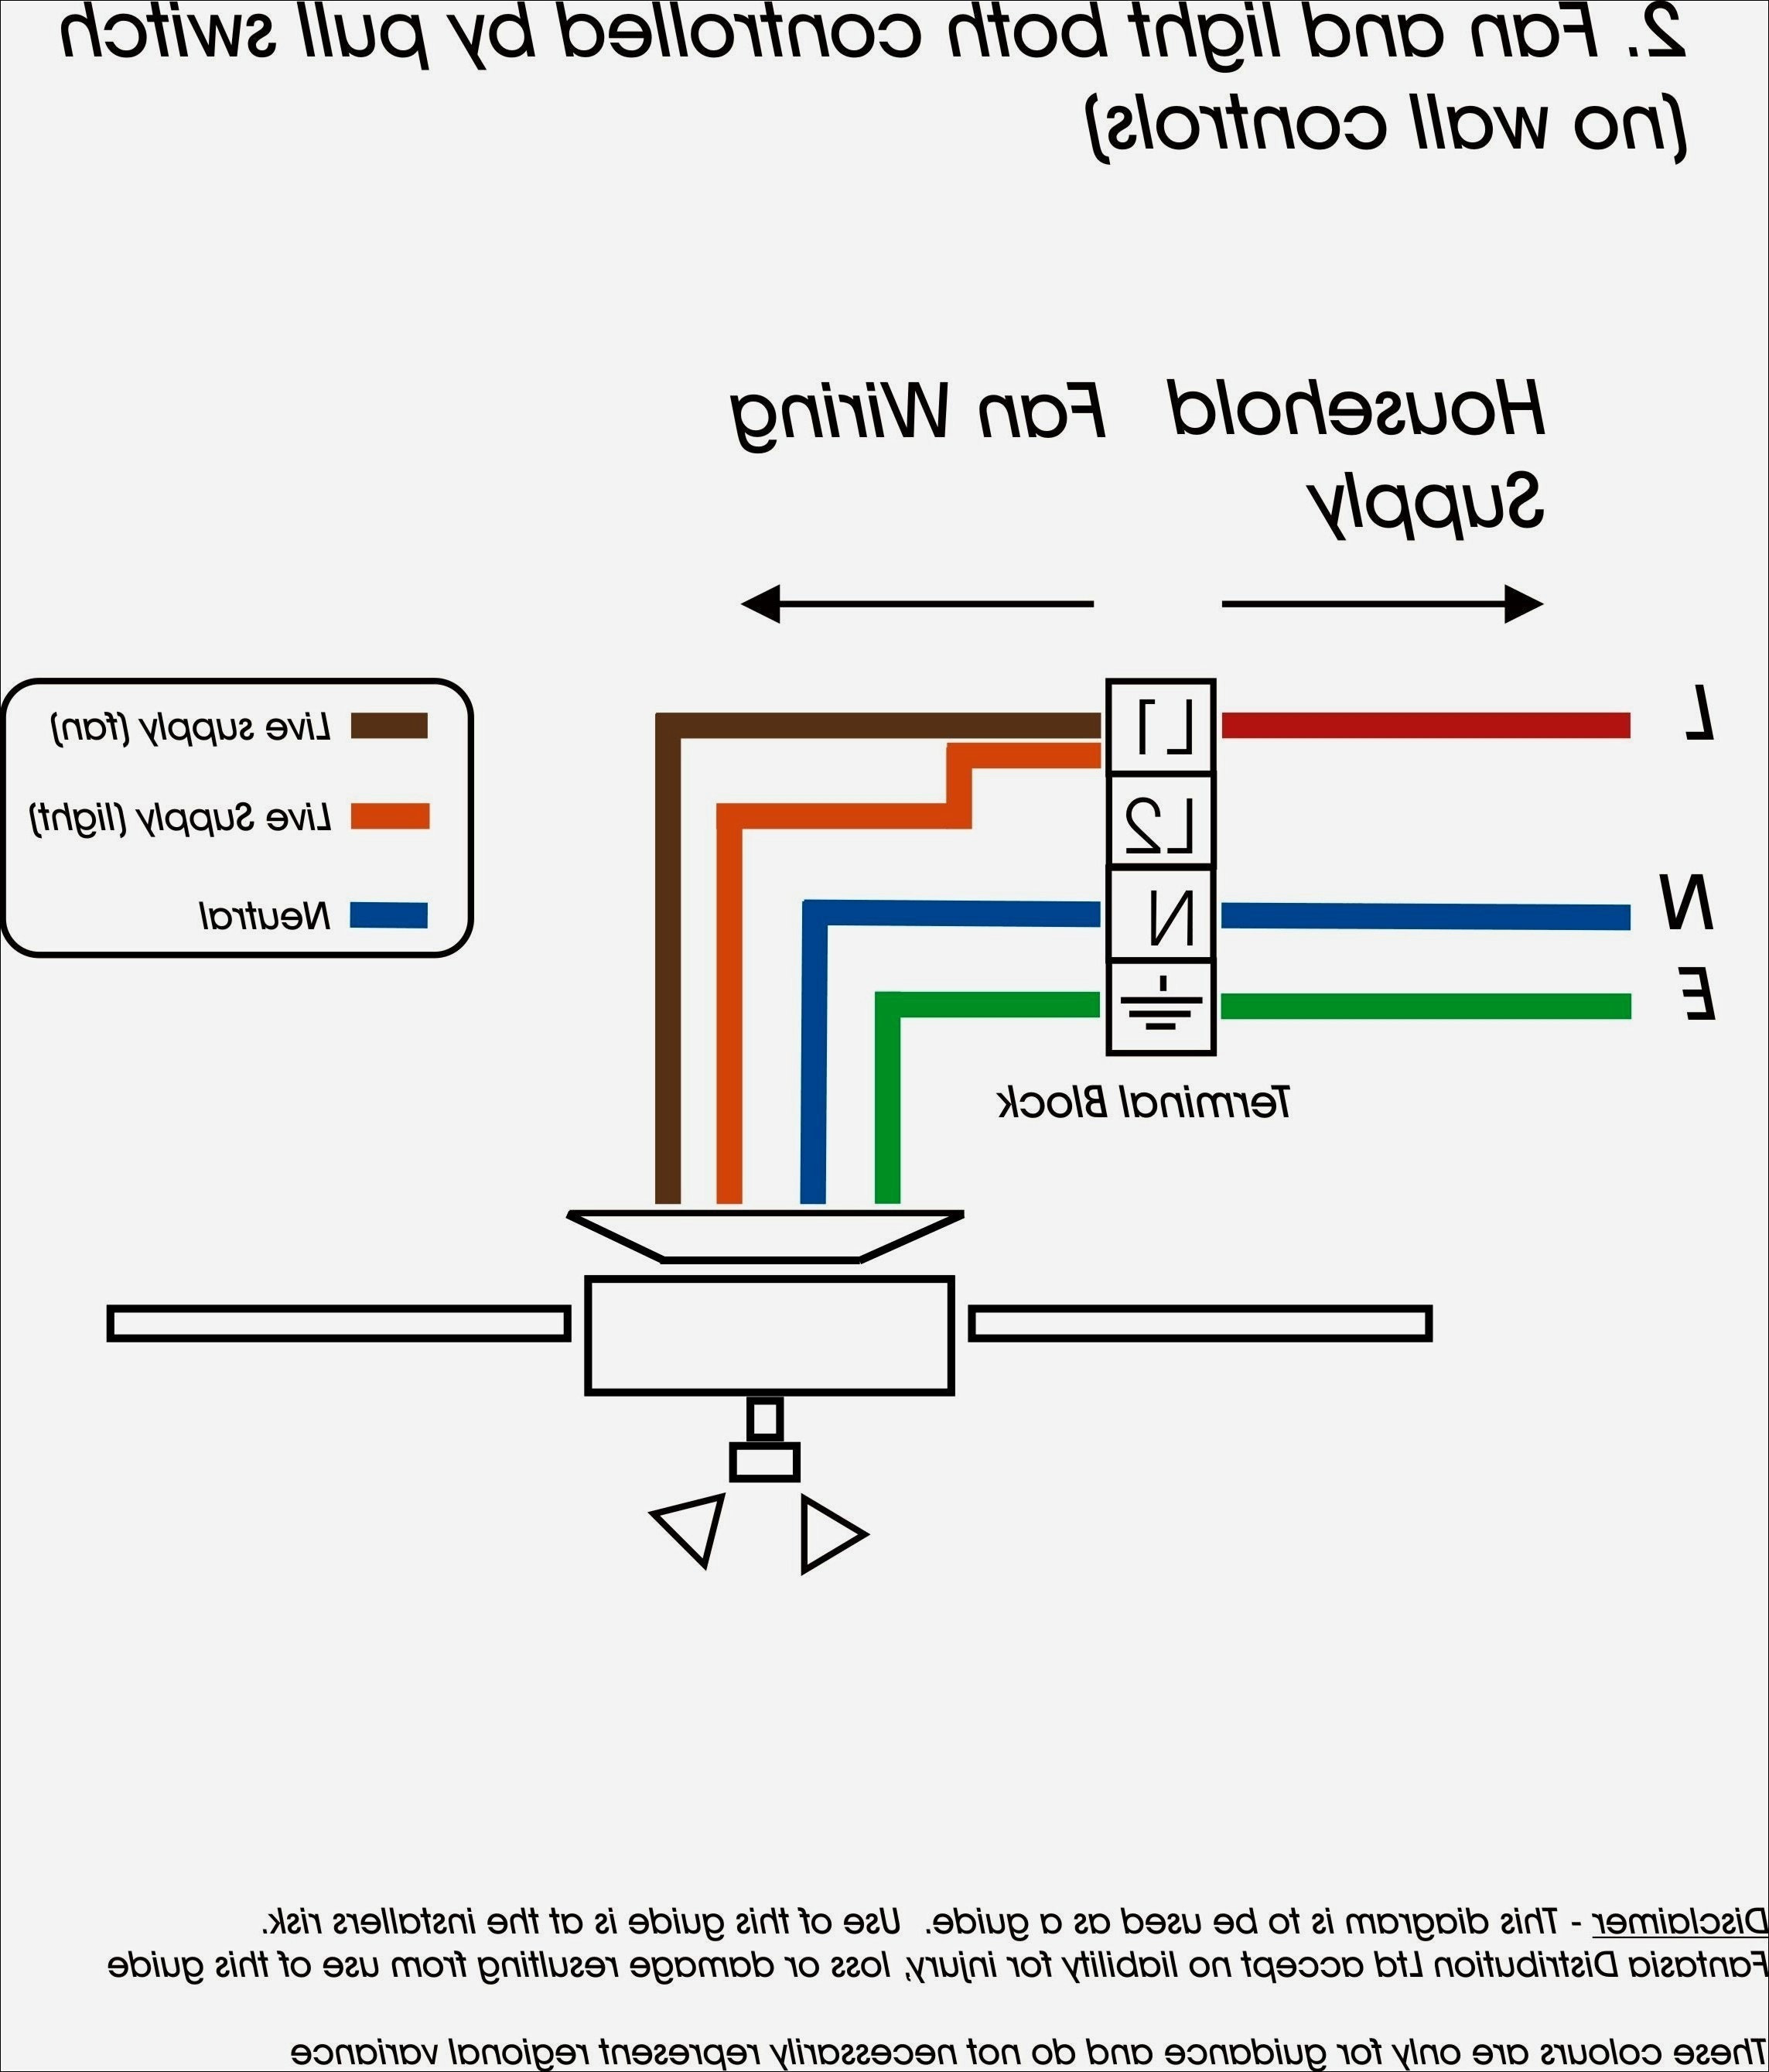 lutron dimmer switch wiring diagram Collection-Lutron Dimmer Switch Wiring Diagram Valid Wiring Diagram for Dimmer Switch Australia 13-d